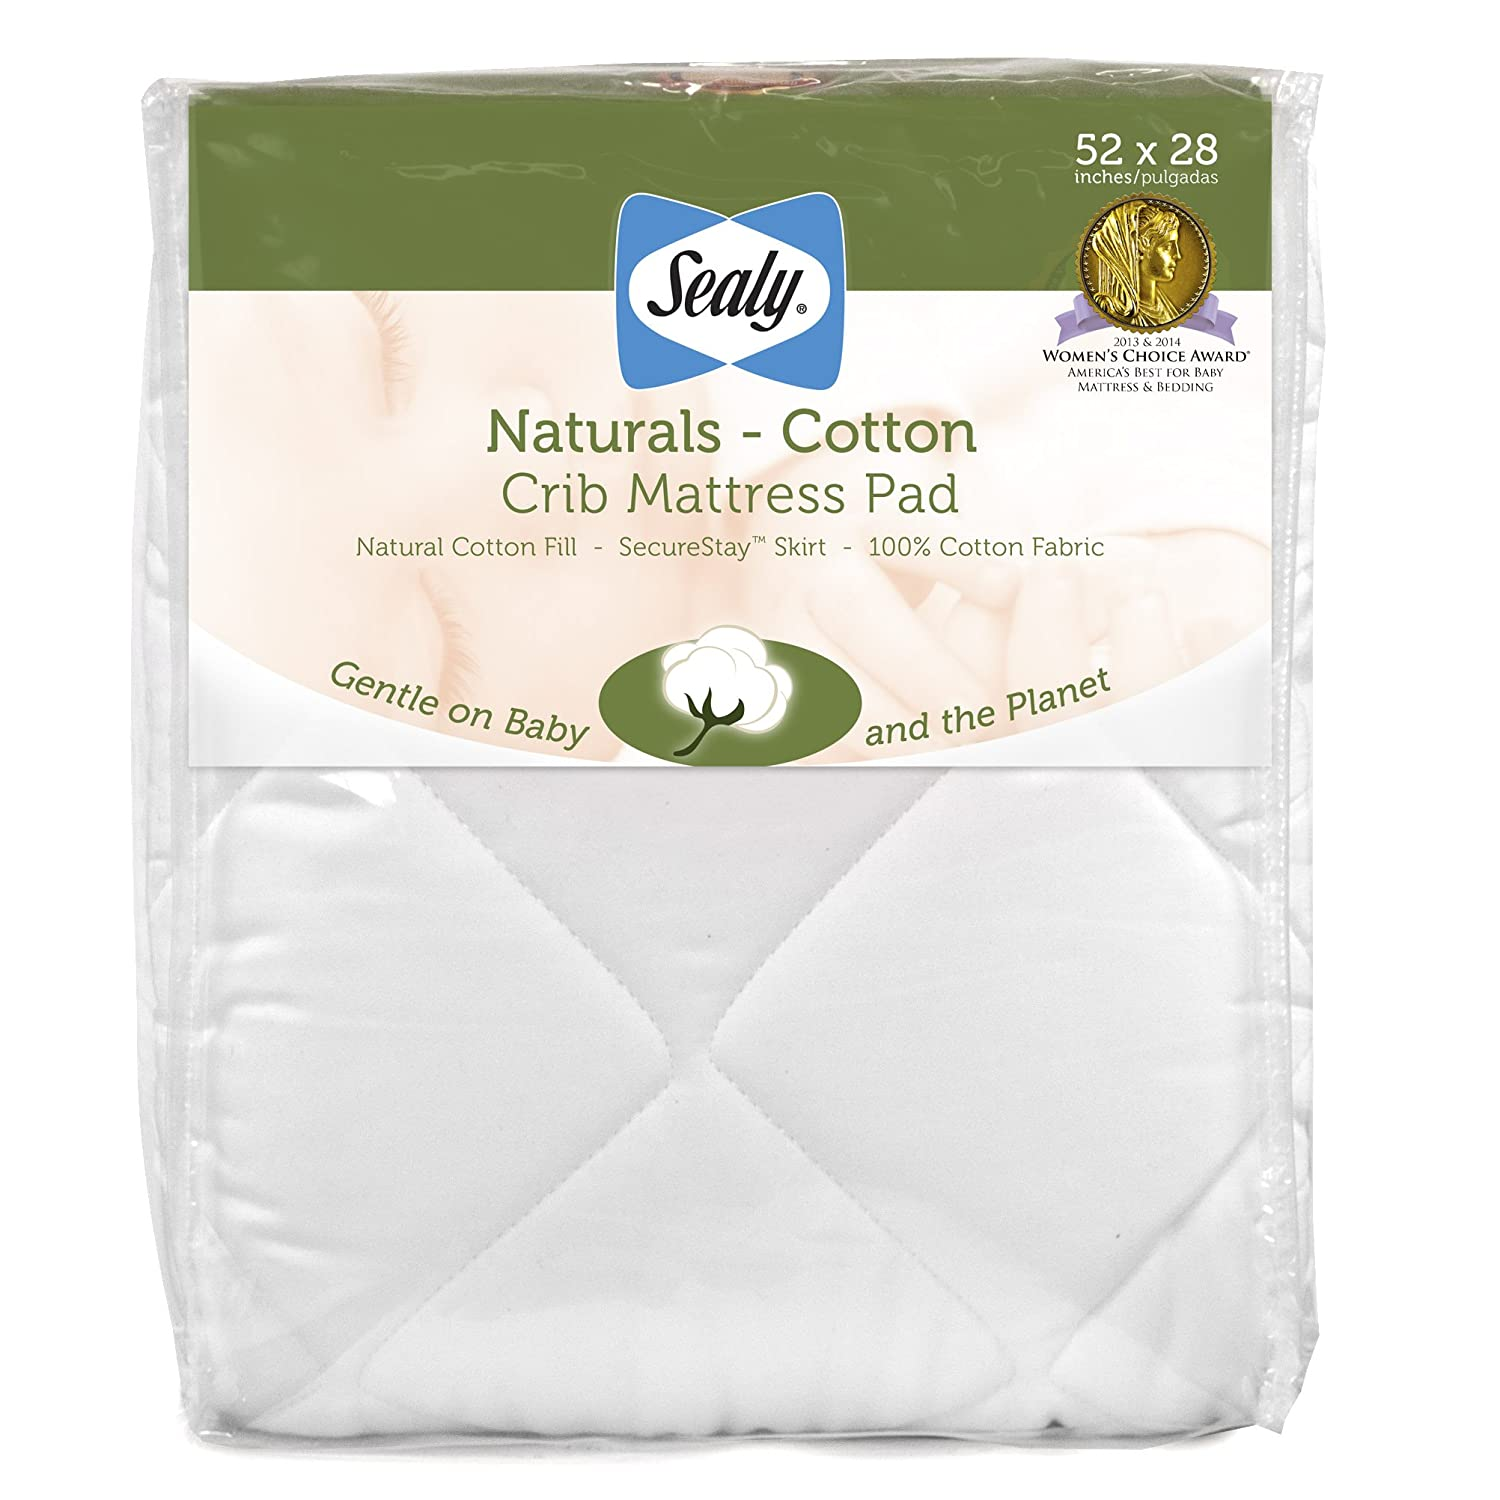 Best baby crib mattress 2013 - Amazon Com Sealy Naturals Cotton Fitted Crib Toddler Mattress Pad Cover 100 Cotton Fabric Fill Hypoallergenic 300 Thread Count Machine Washable